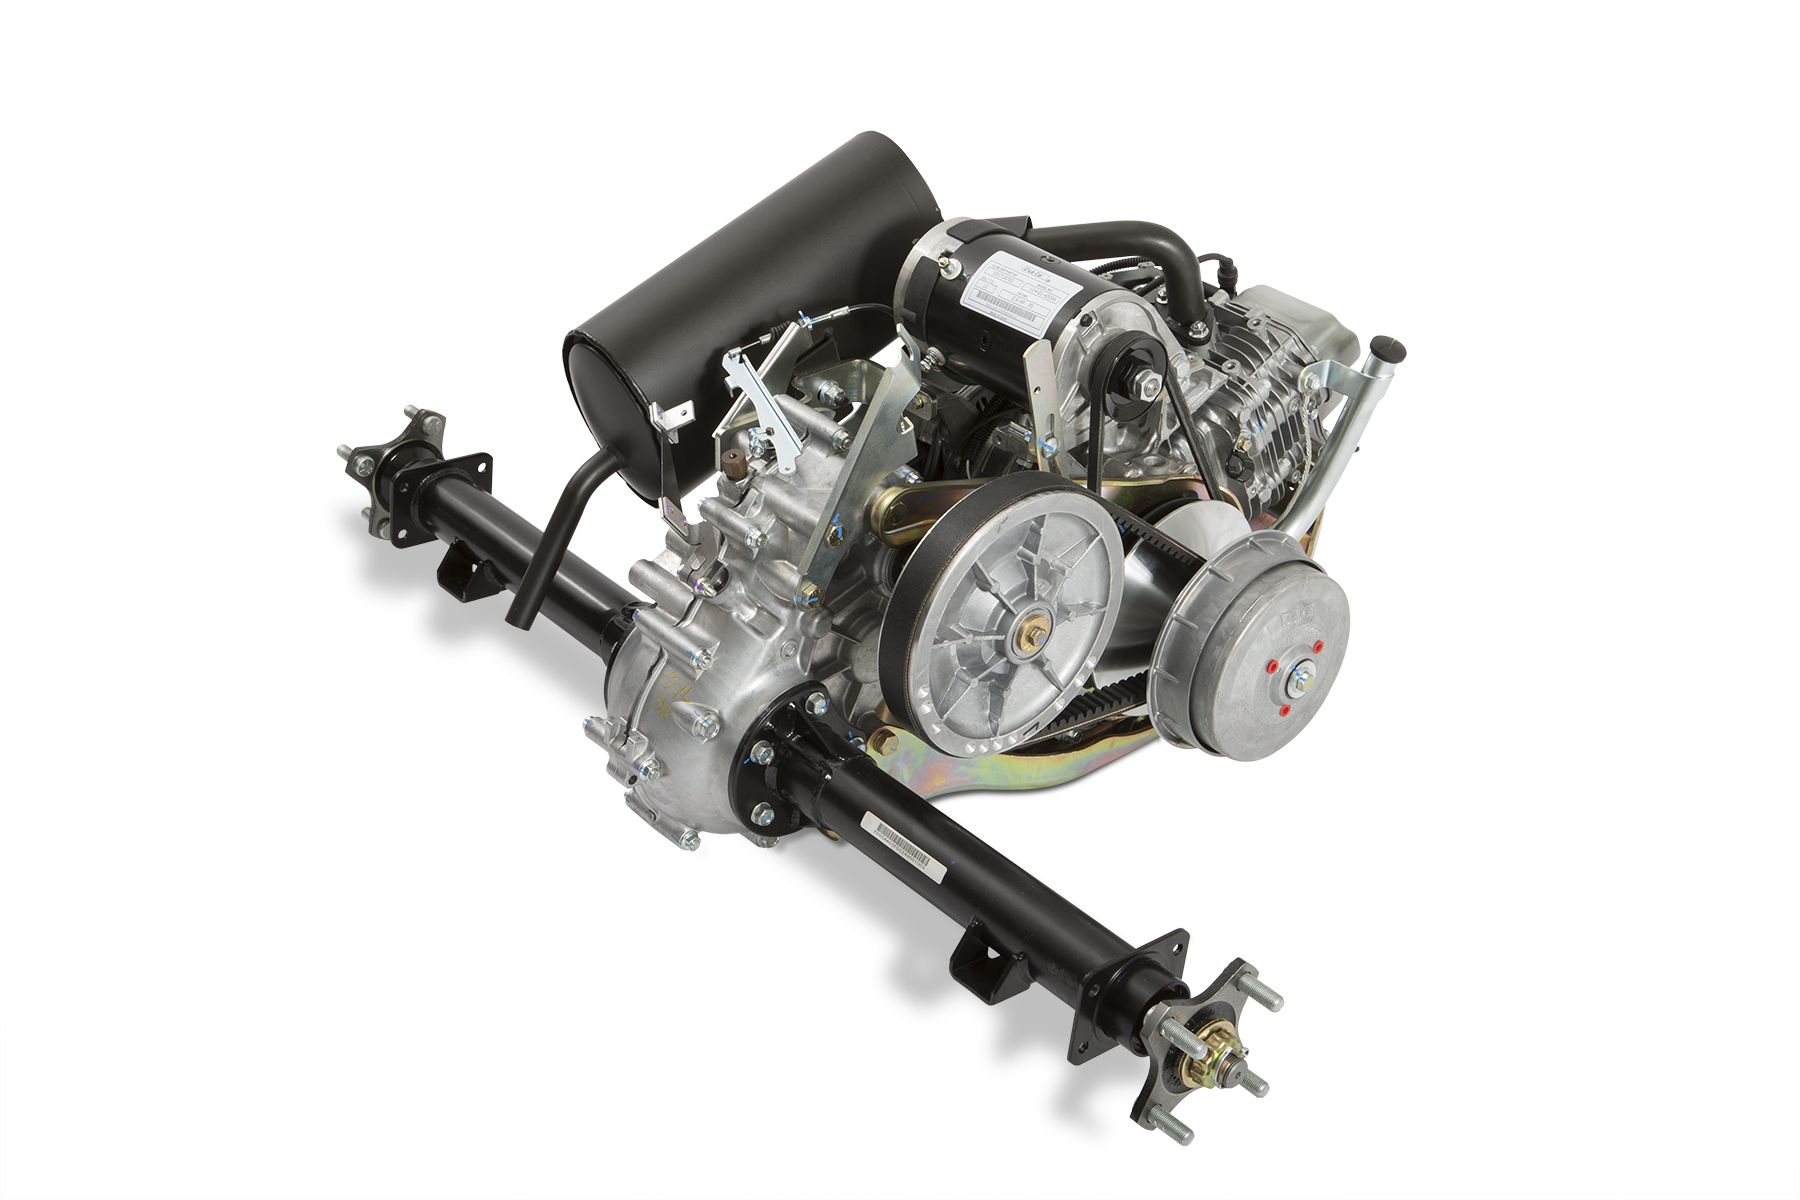 Precedent Golf Cars Now Powered By Best In Class Efi Engine